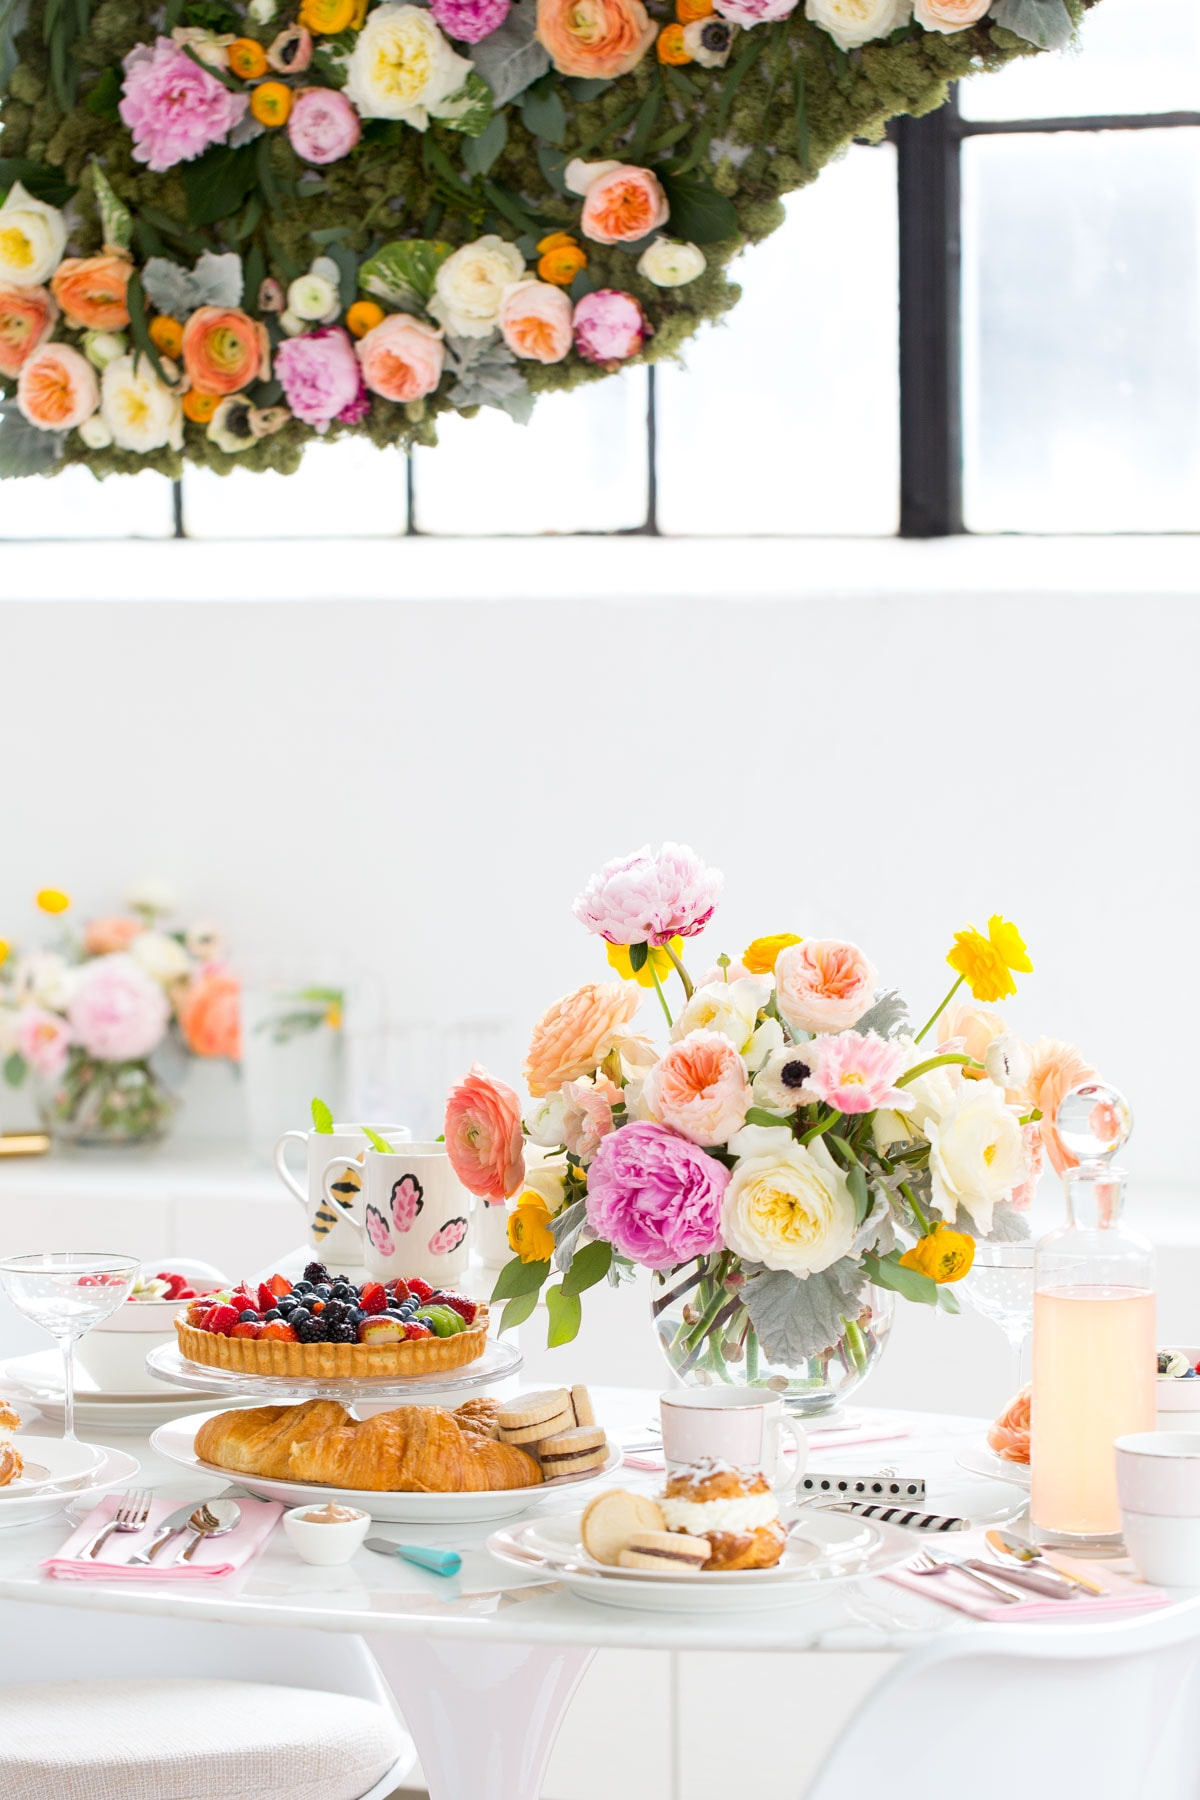 A Sweets and Sips Modern Bridal Brunch with Kate Spade and Williams-Sonoma by top Houston lifestyle blogger, Ashley Rose of Sugar & Cloth